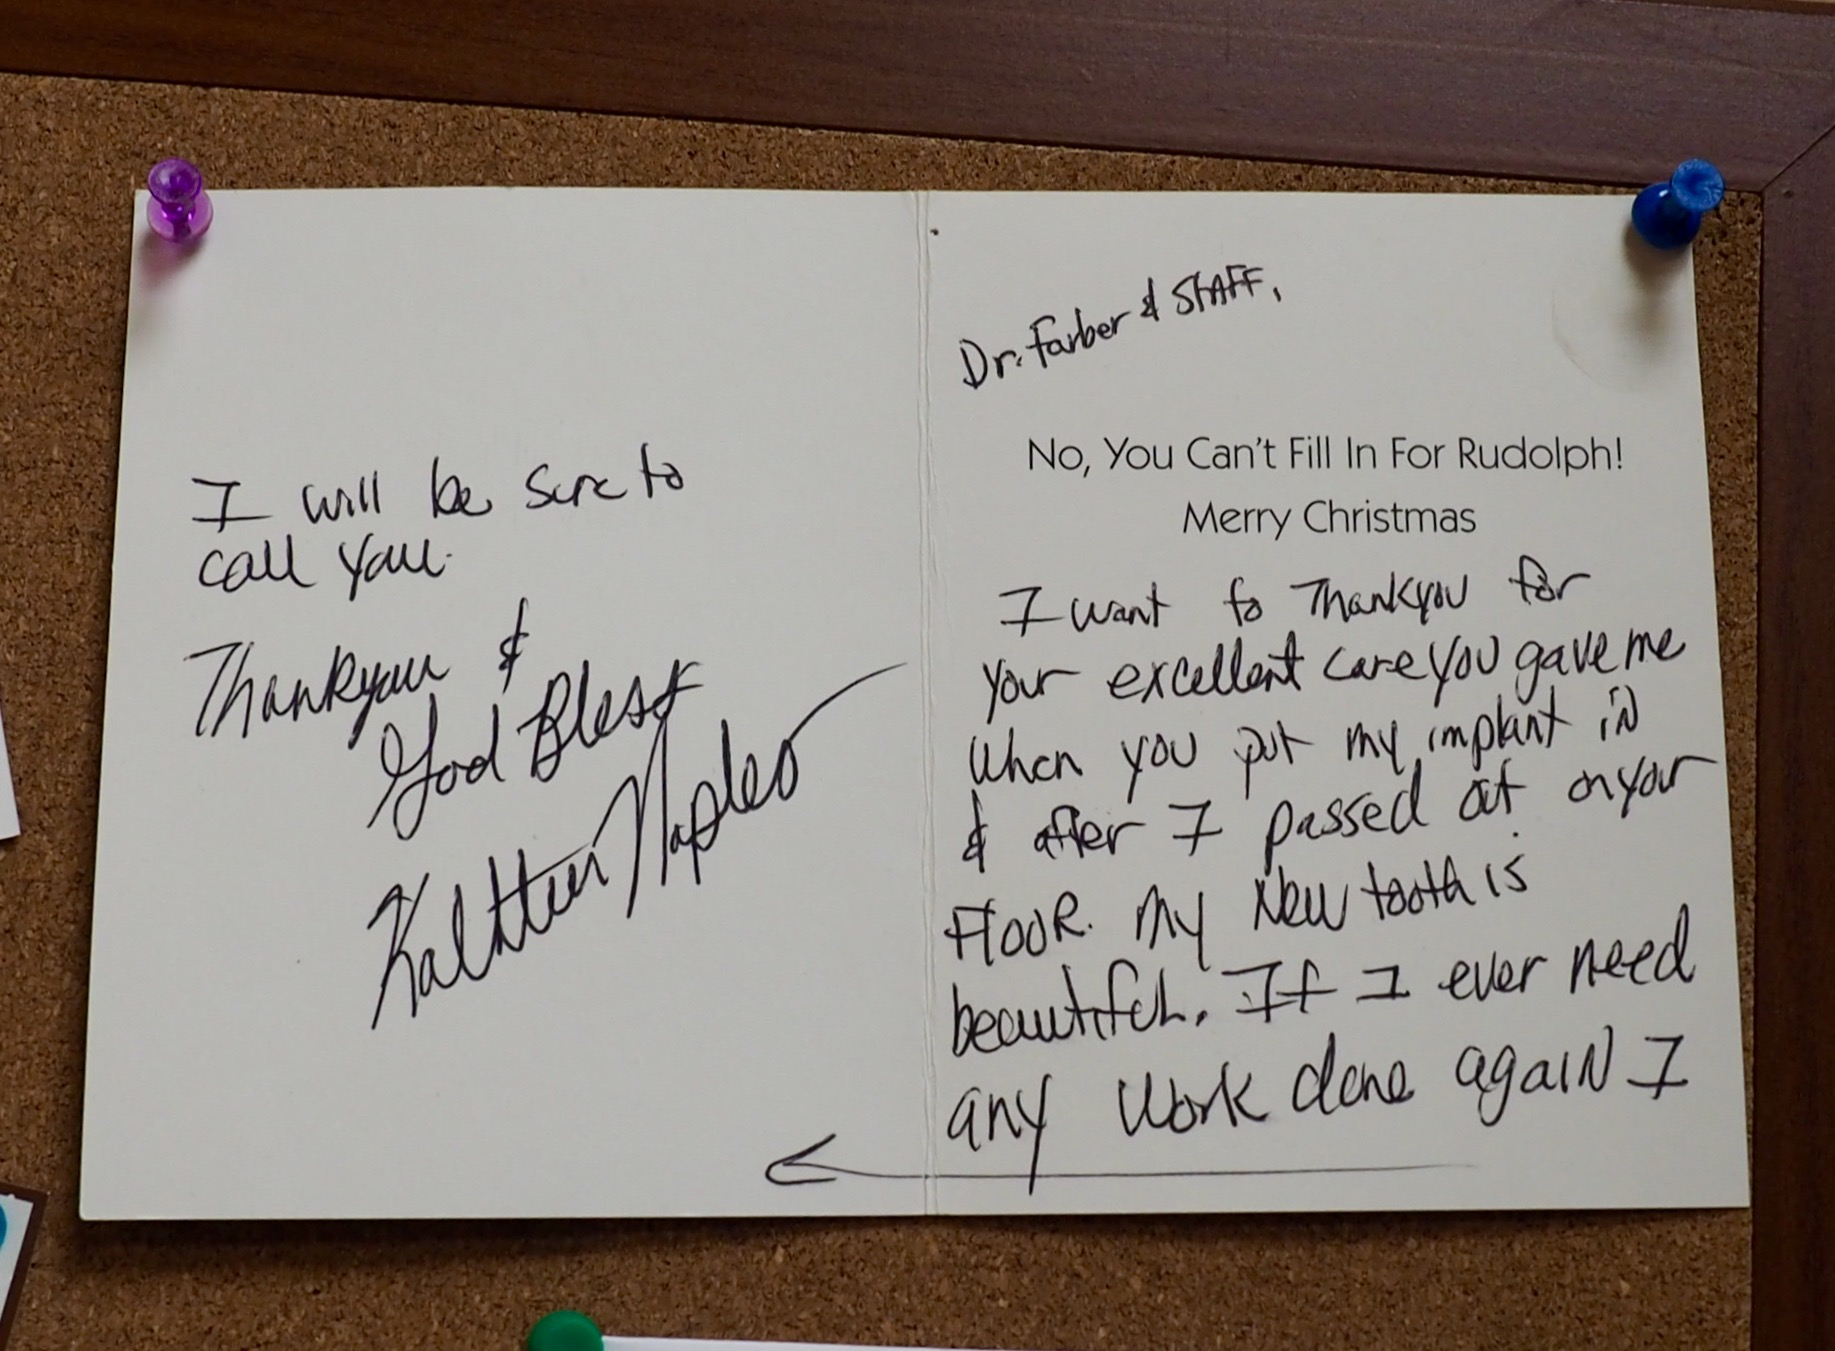 *Dr. Farber Thank You Card 1